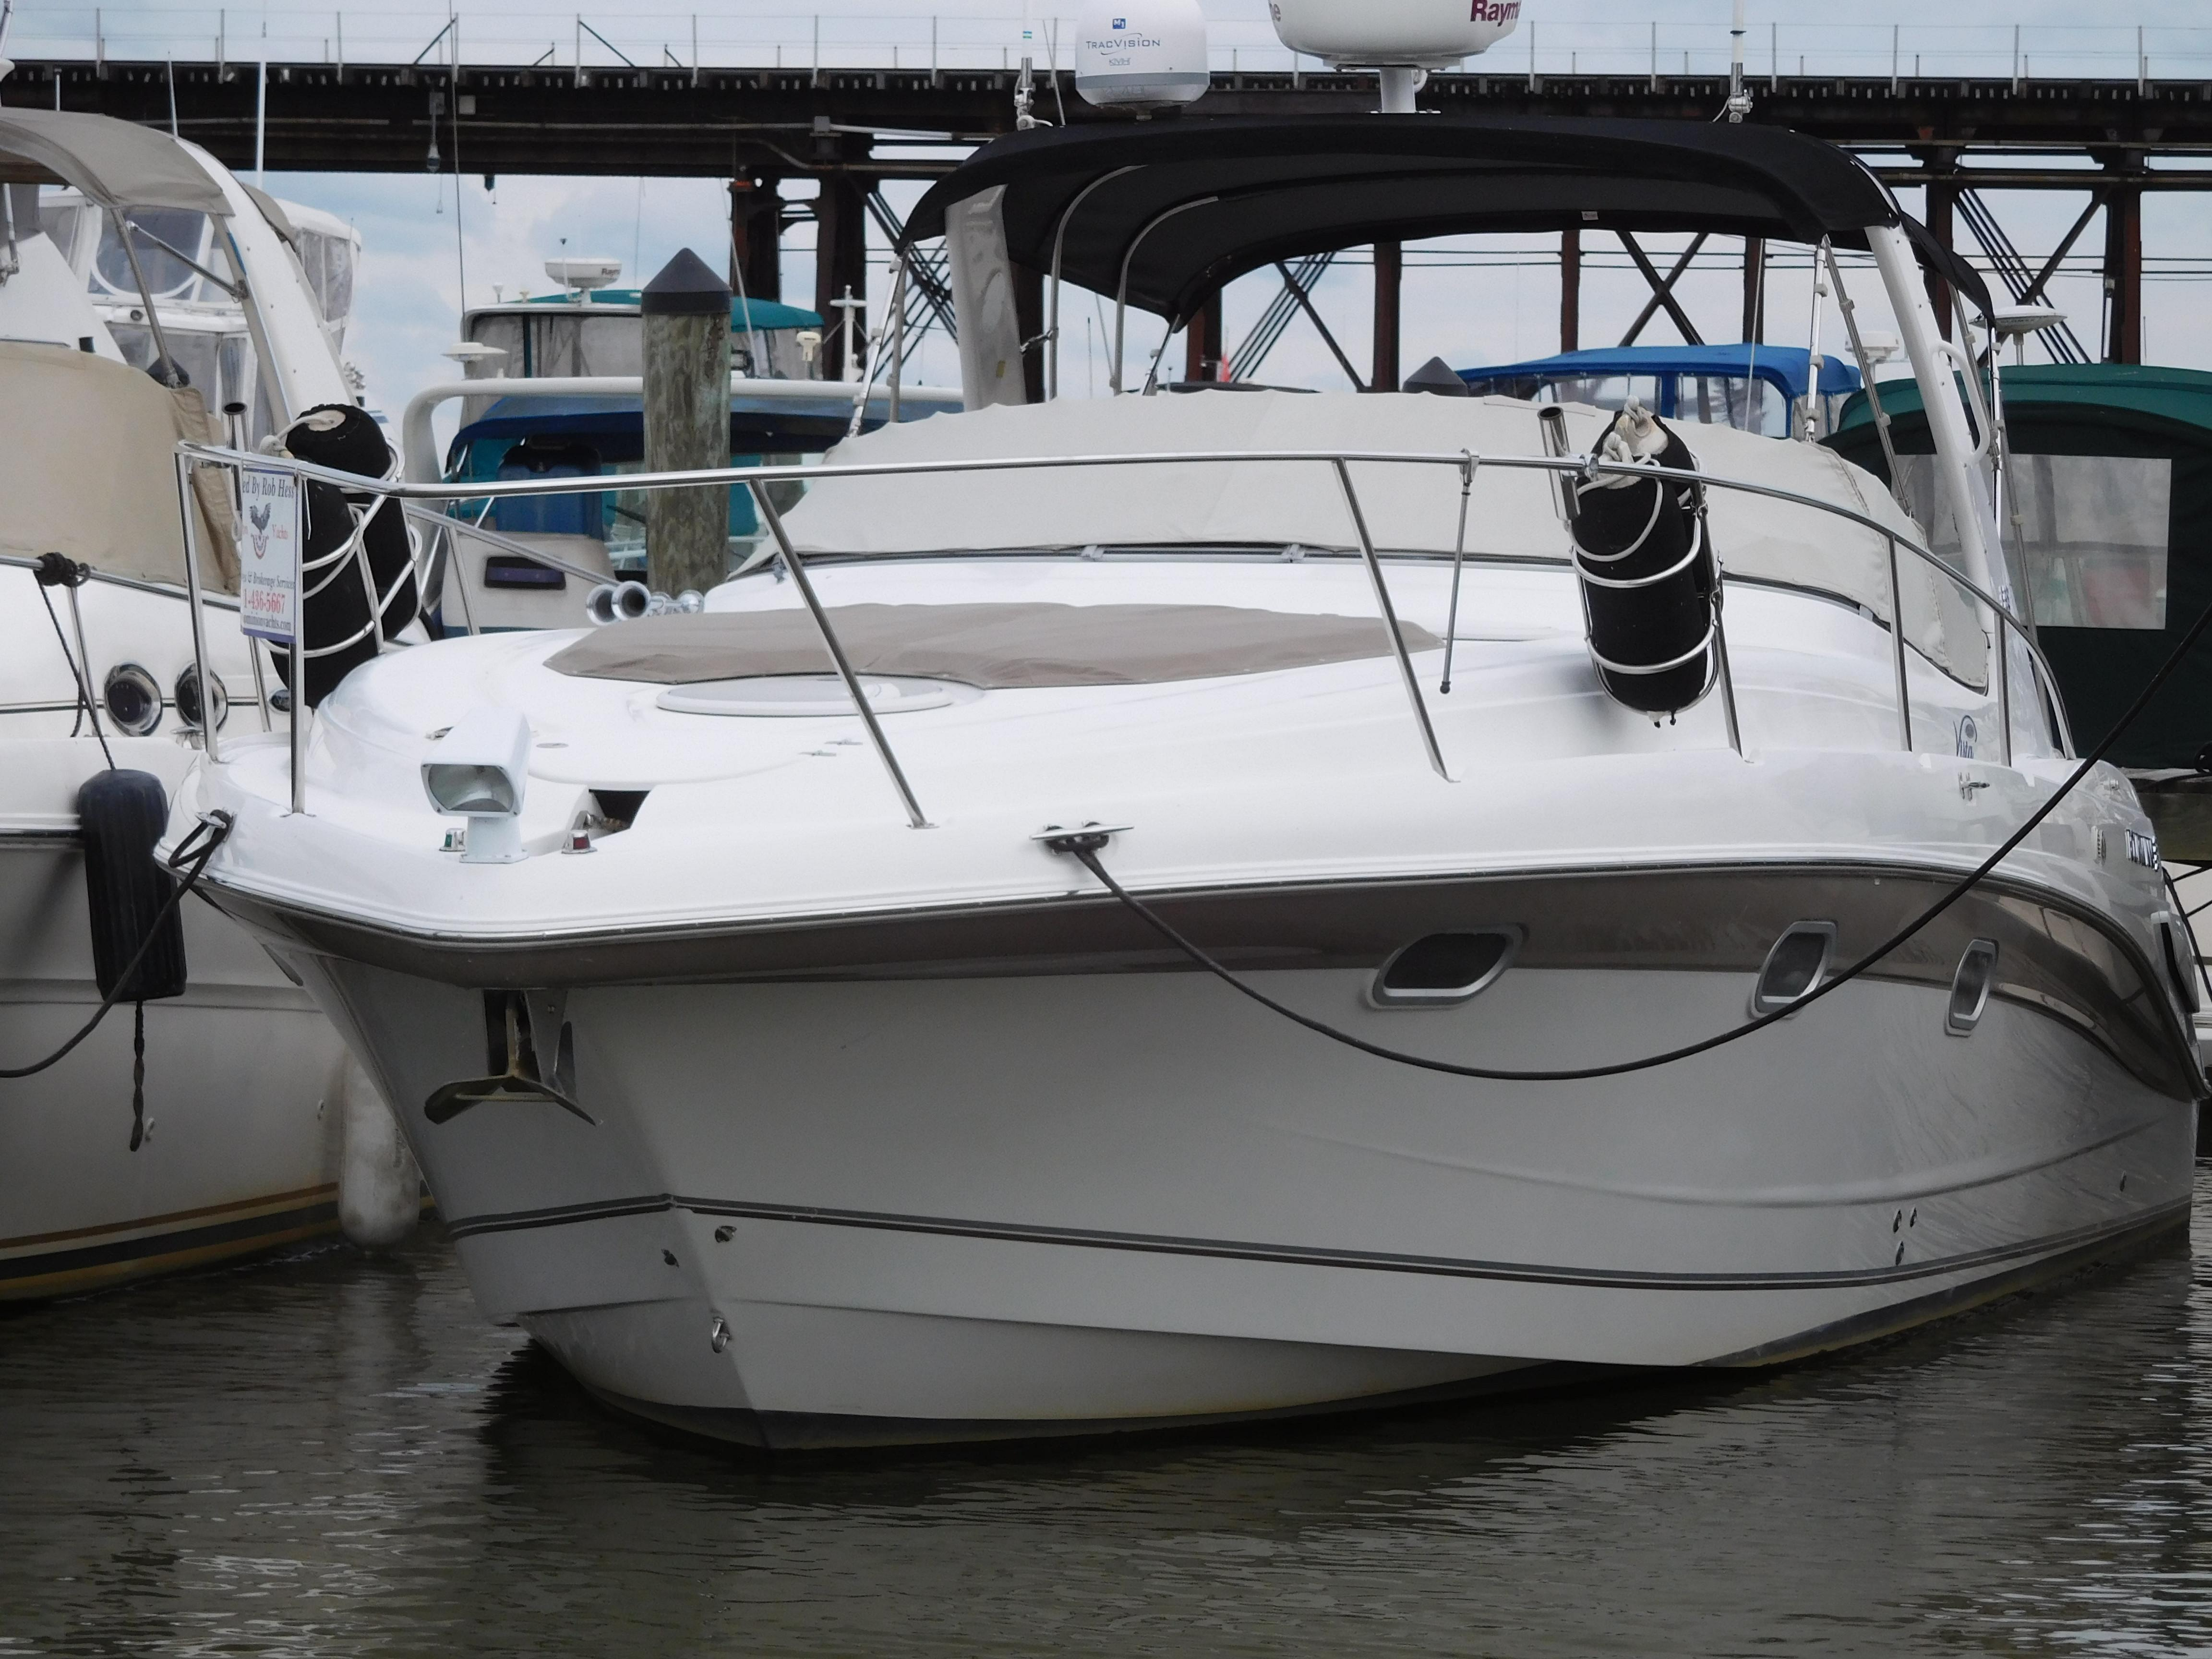 6504490_20171031092206767_1_XLARGE&w=520&h=346&t=1509470571000 search boats for sale yachtworld com  at crackthecode.co